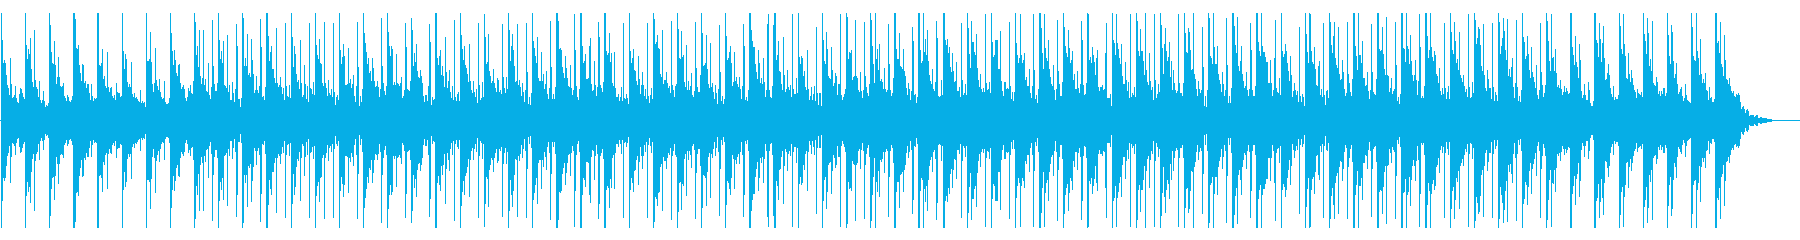 [Kick-out] BGM for news commentary's reproduced waveform